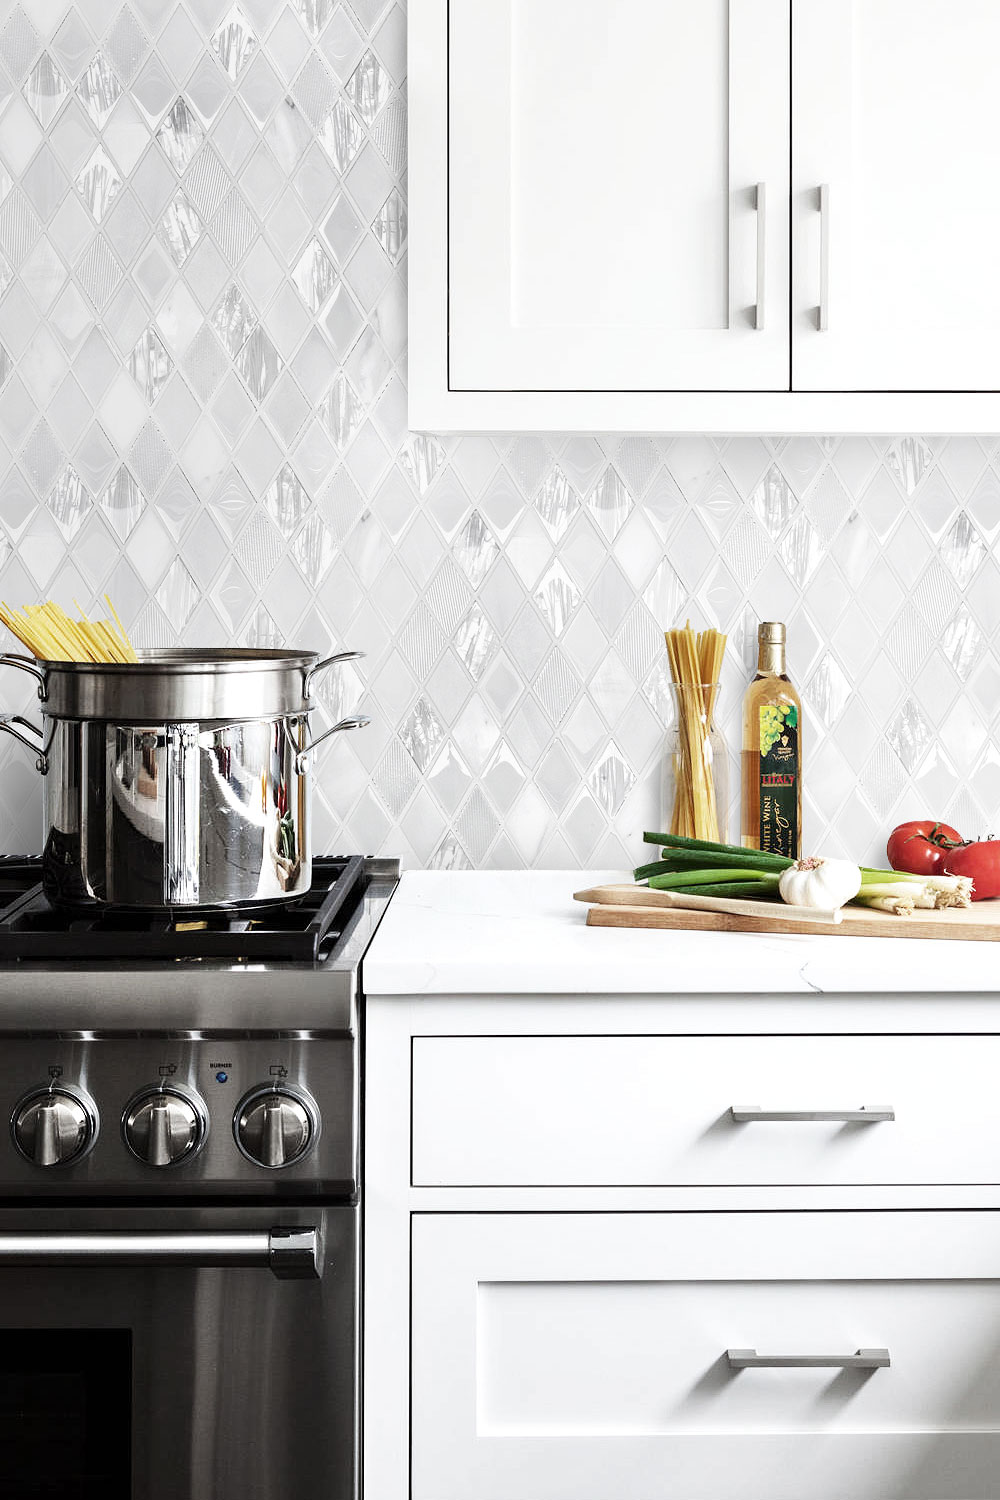 White Backsplash Tile White Quartz Countertop And Cabinet